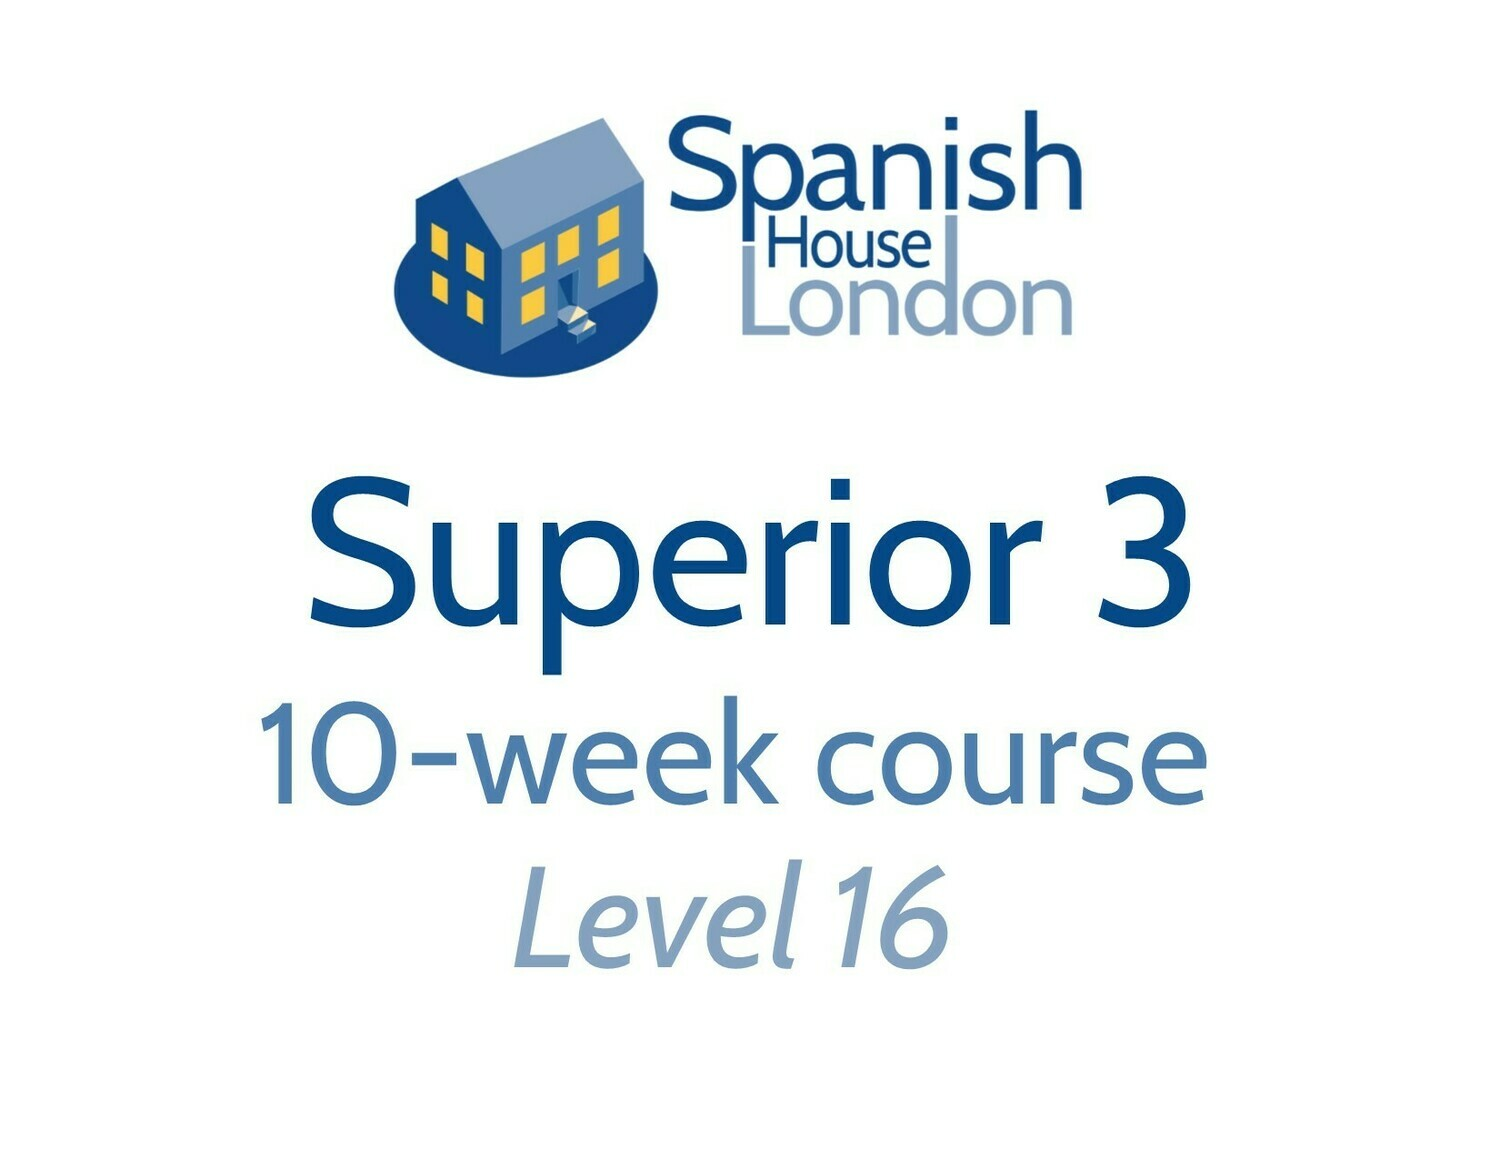 Superior 3 Course starting on 14th January at 7.30pm in Clapham North